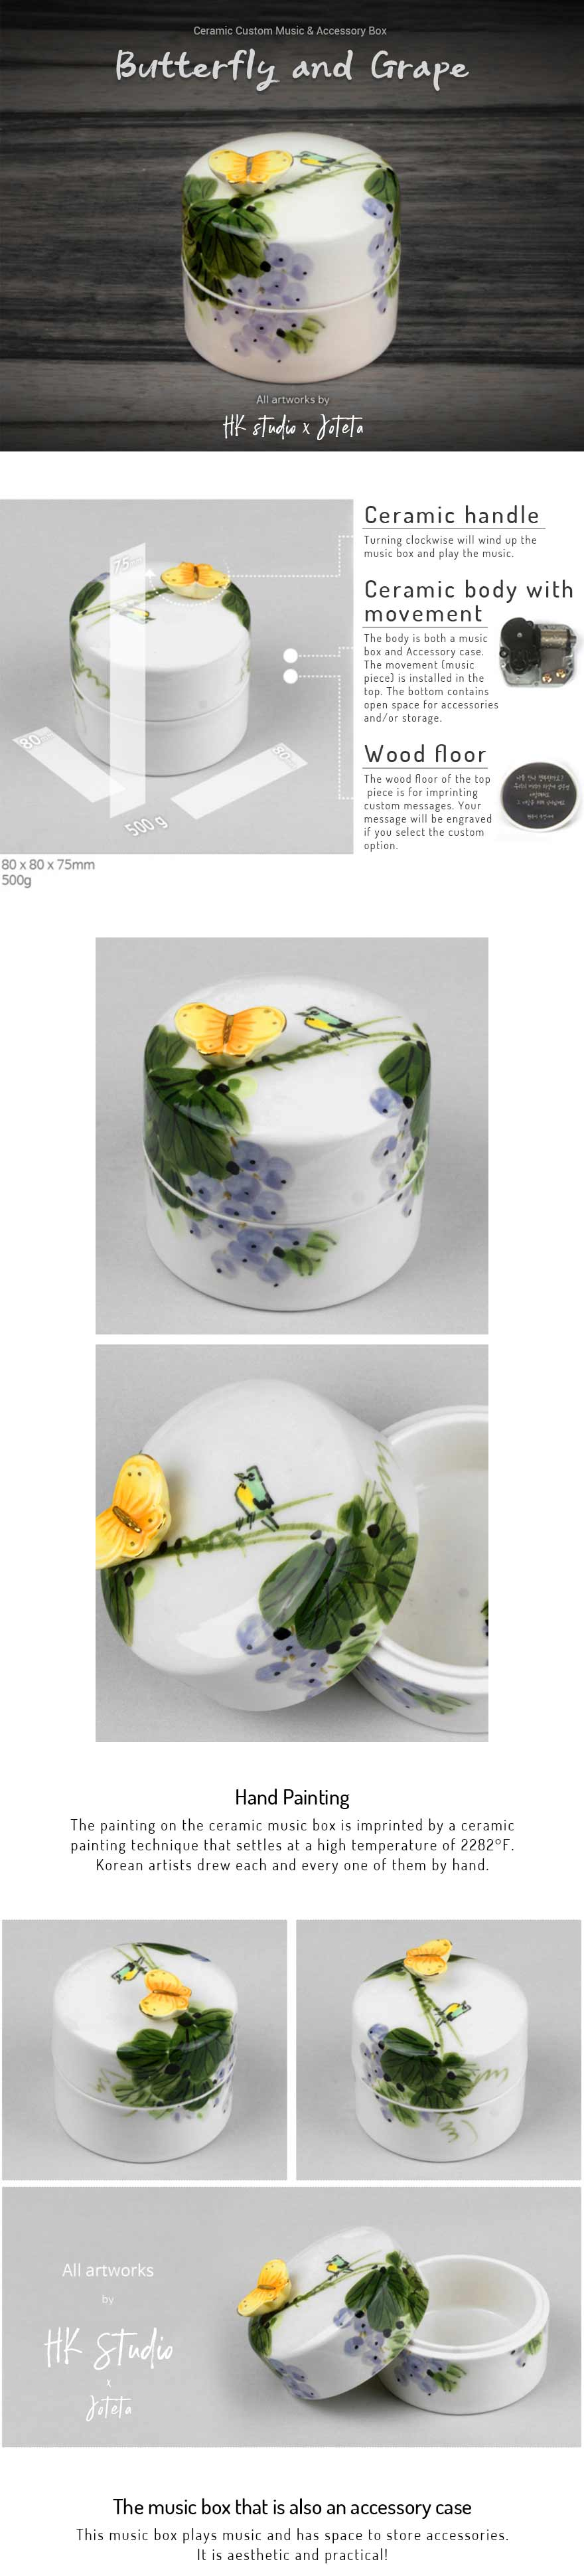 Butterfly and Grape Ceramic Custom Music Jewelry Box. Handmade by Koreans and you can customize the box by picking a song and writing your own customized message.